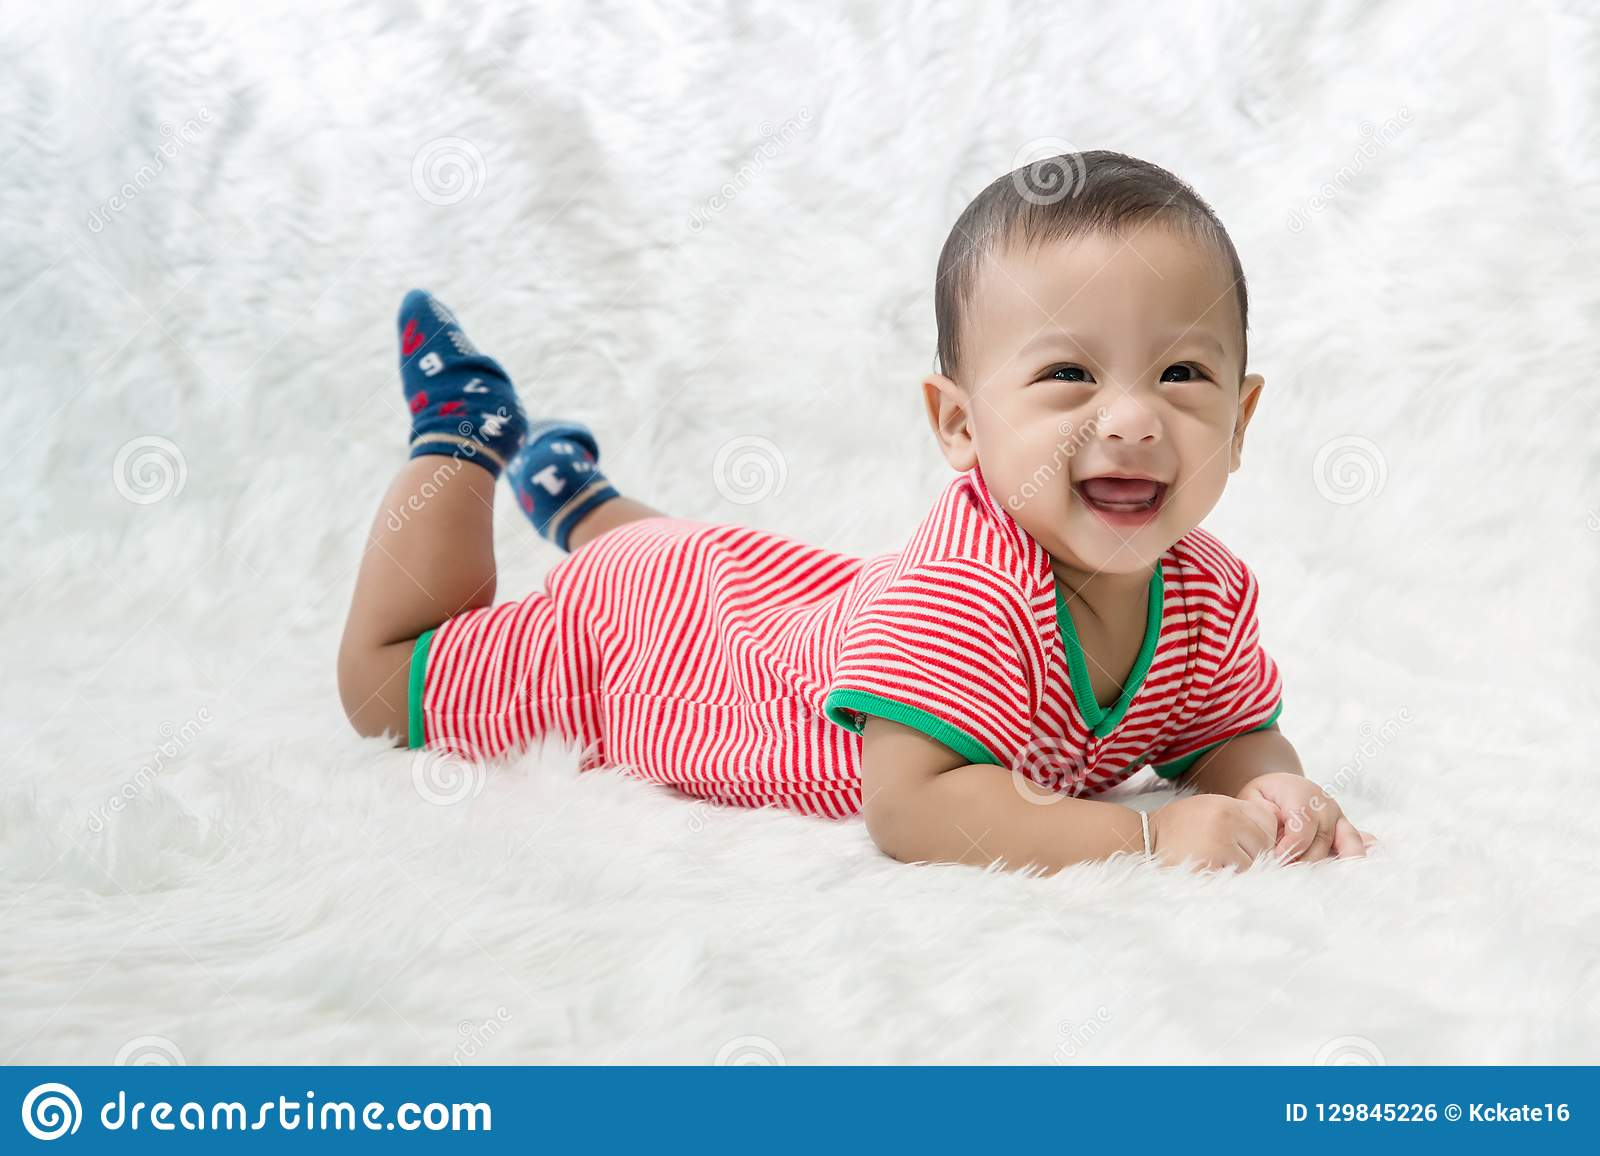 Smile baby boy is shooting in the studio. fashion image of baby and family. Lovely baby lie down on a soft white carpet.